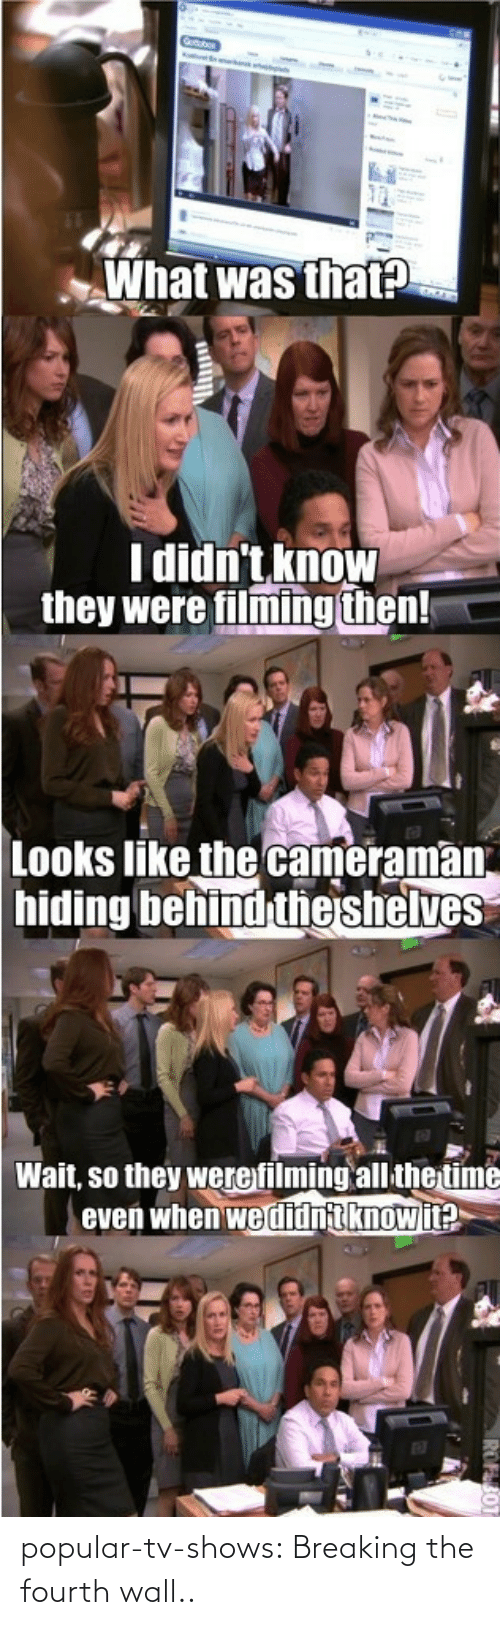 breaking the fourth wall: What was that?  I didn't know  they were filming then!  Looks like the cameraman  hiding behind theshelves  Wait, so they werefilming all the time  even when we didnt knowit?  ROFS0T popular-tv-shows:  Breaking the fourth wall..